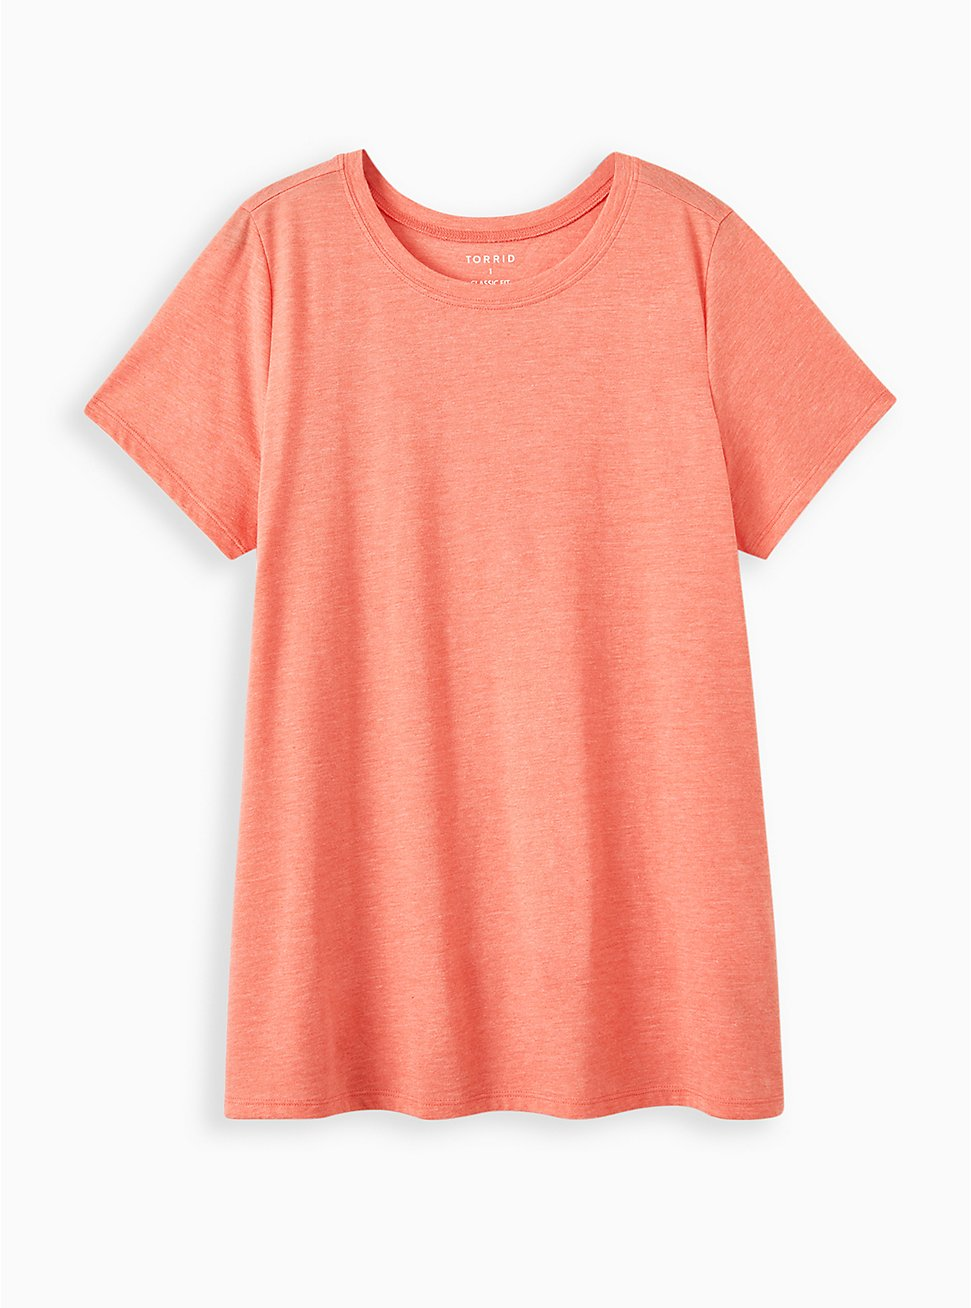 Everyday Tee - Signature Jersey Coral, CORAL, hi-res